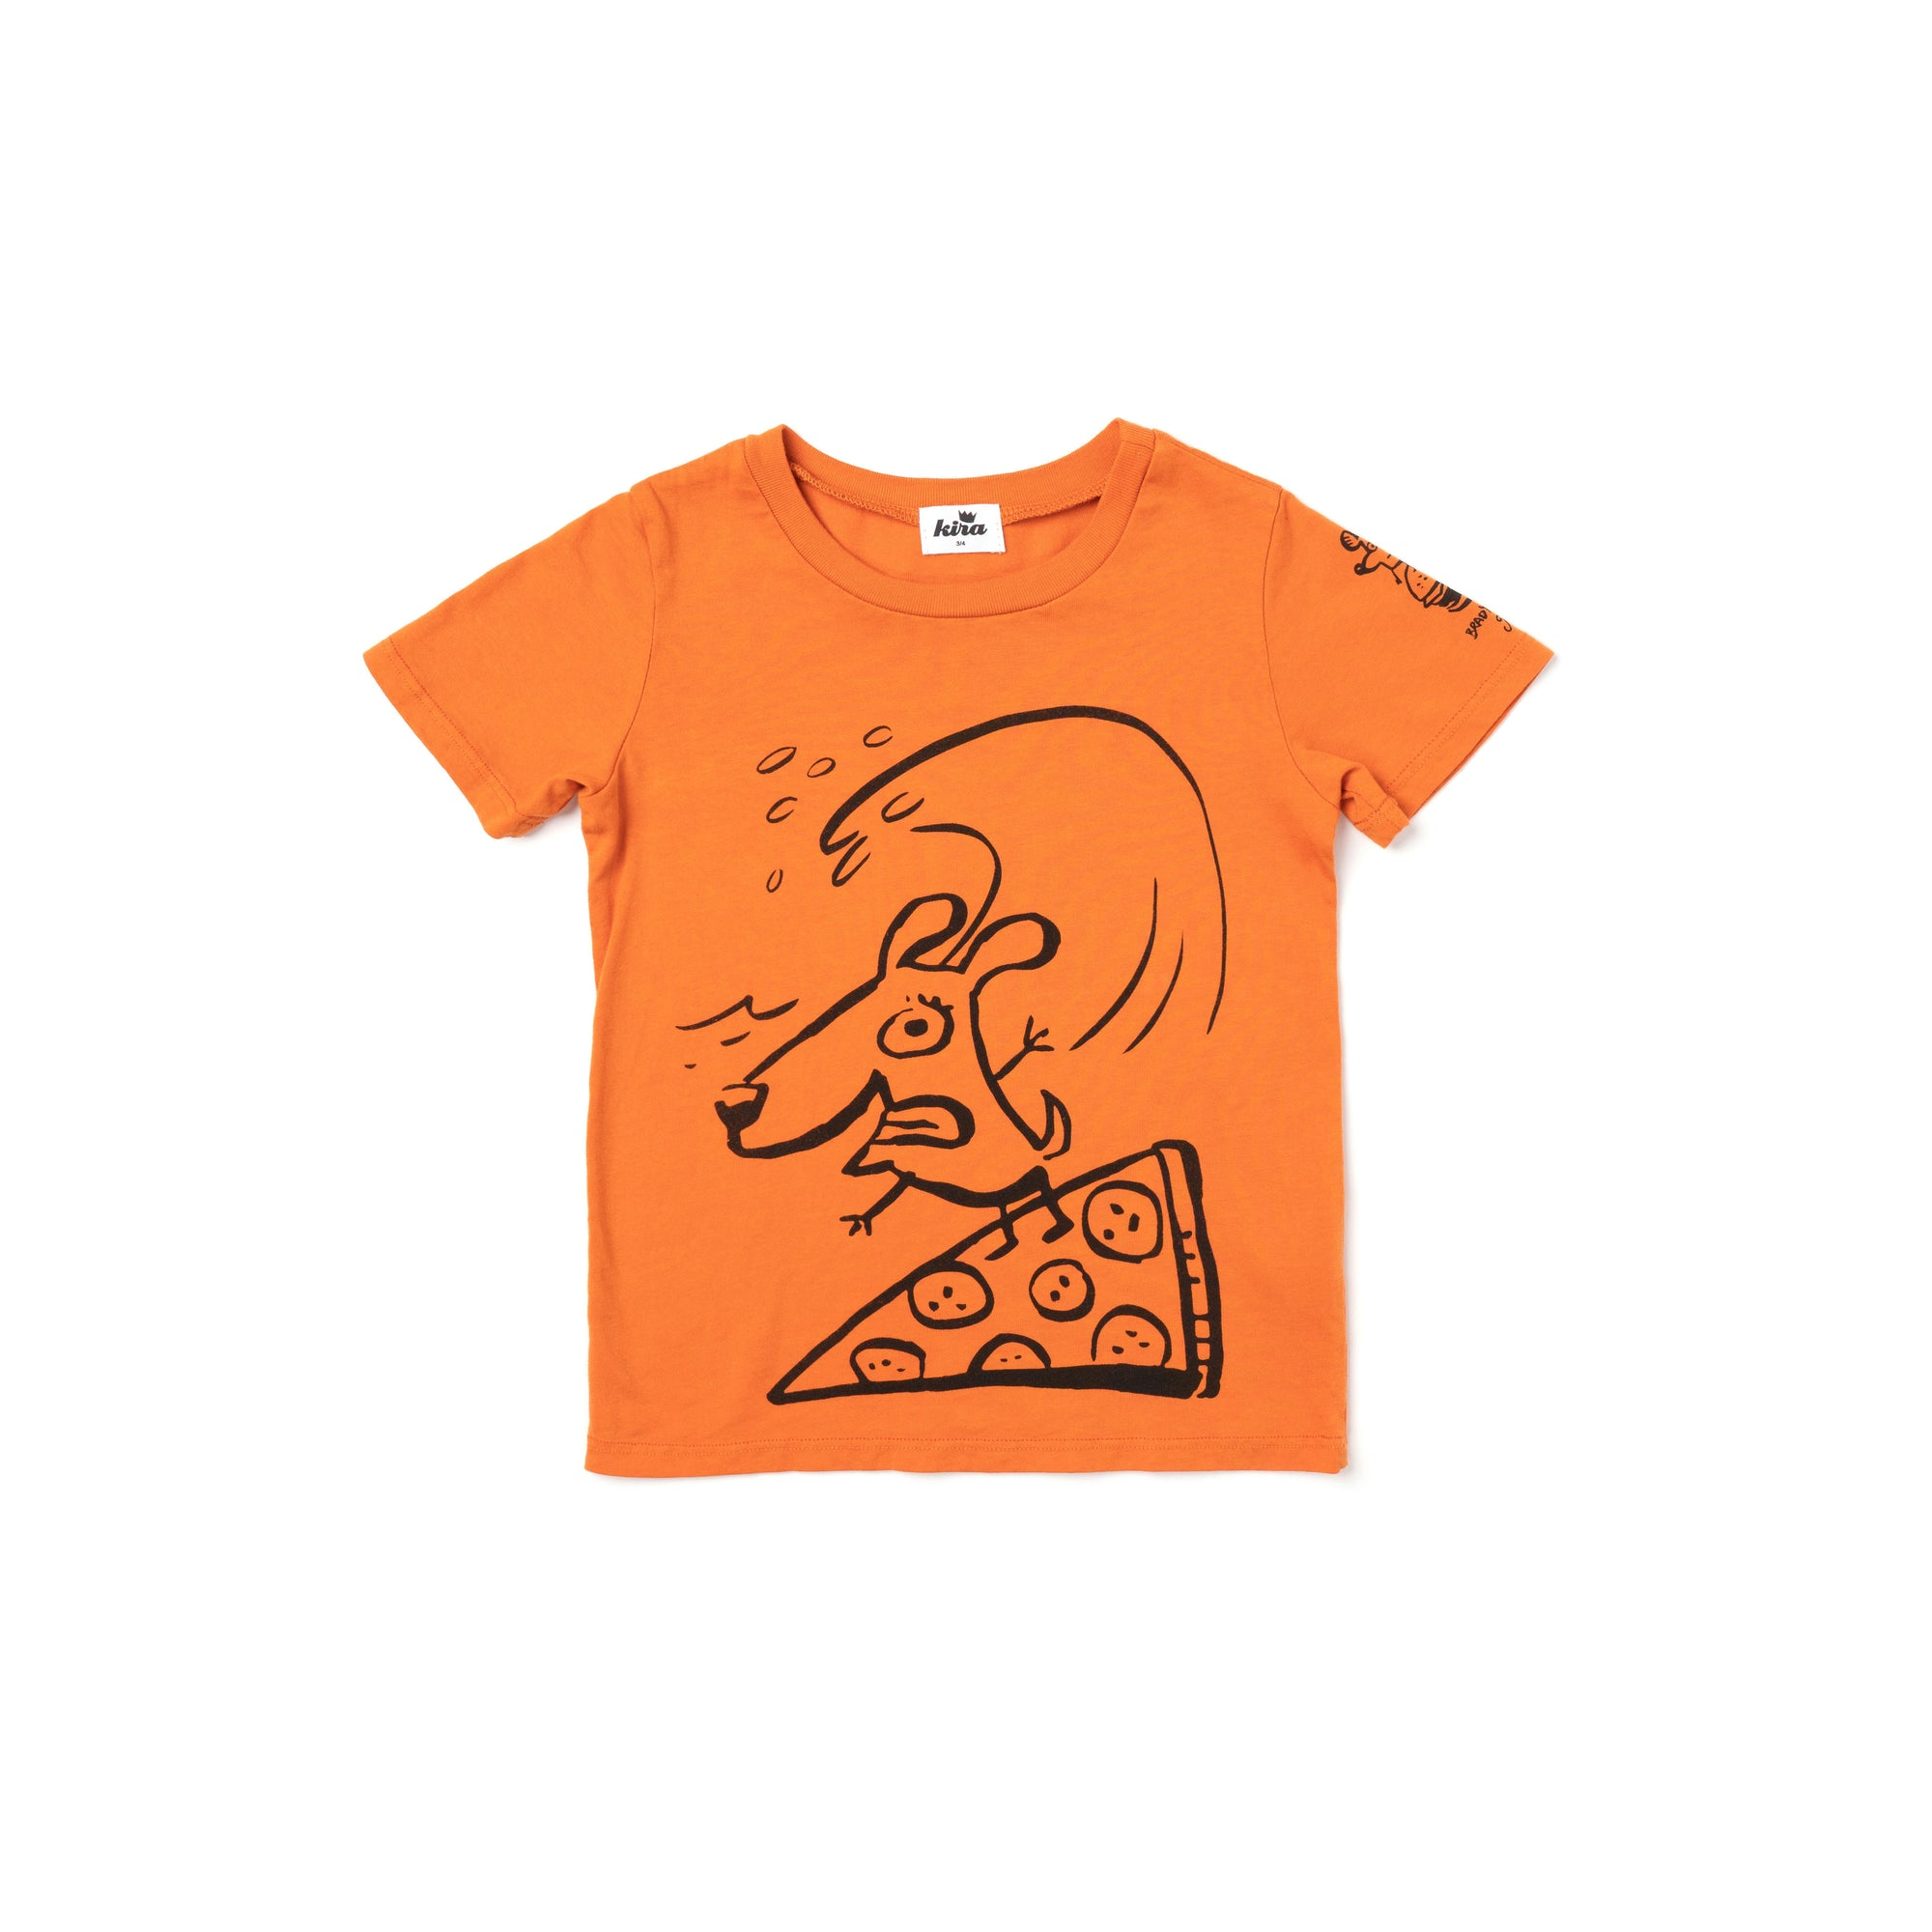 Brady Smith x Kira Pizza Surfer Graphic T-shirt, Copper